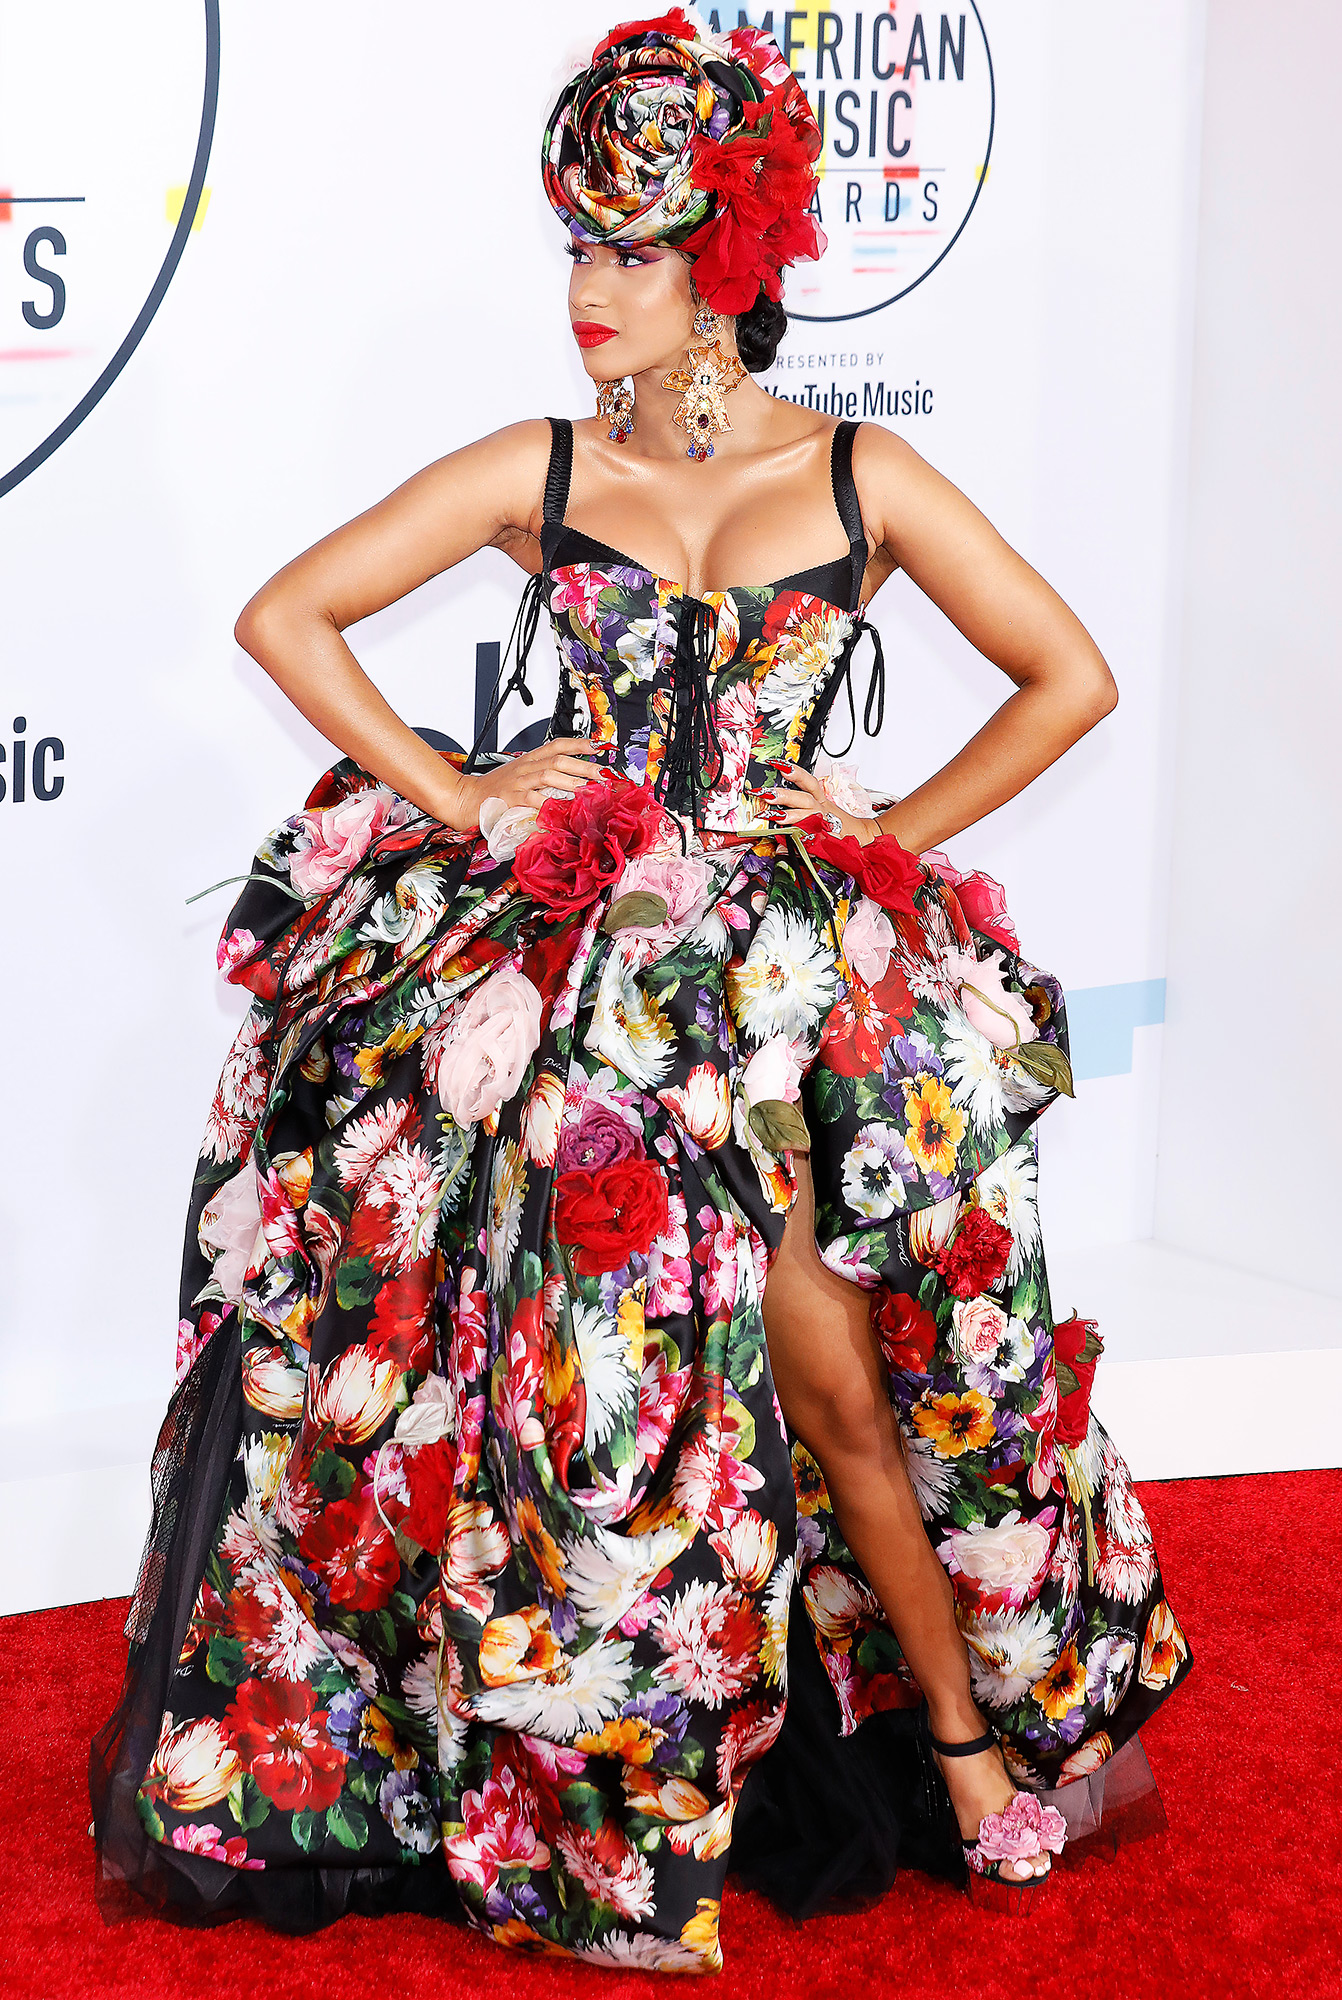 Cardi B photographed on the red carpet of the 2018 American Music Awards